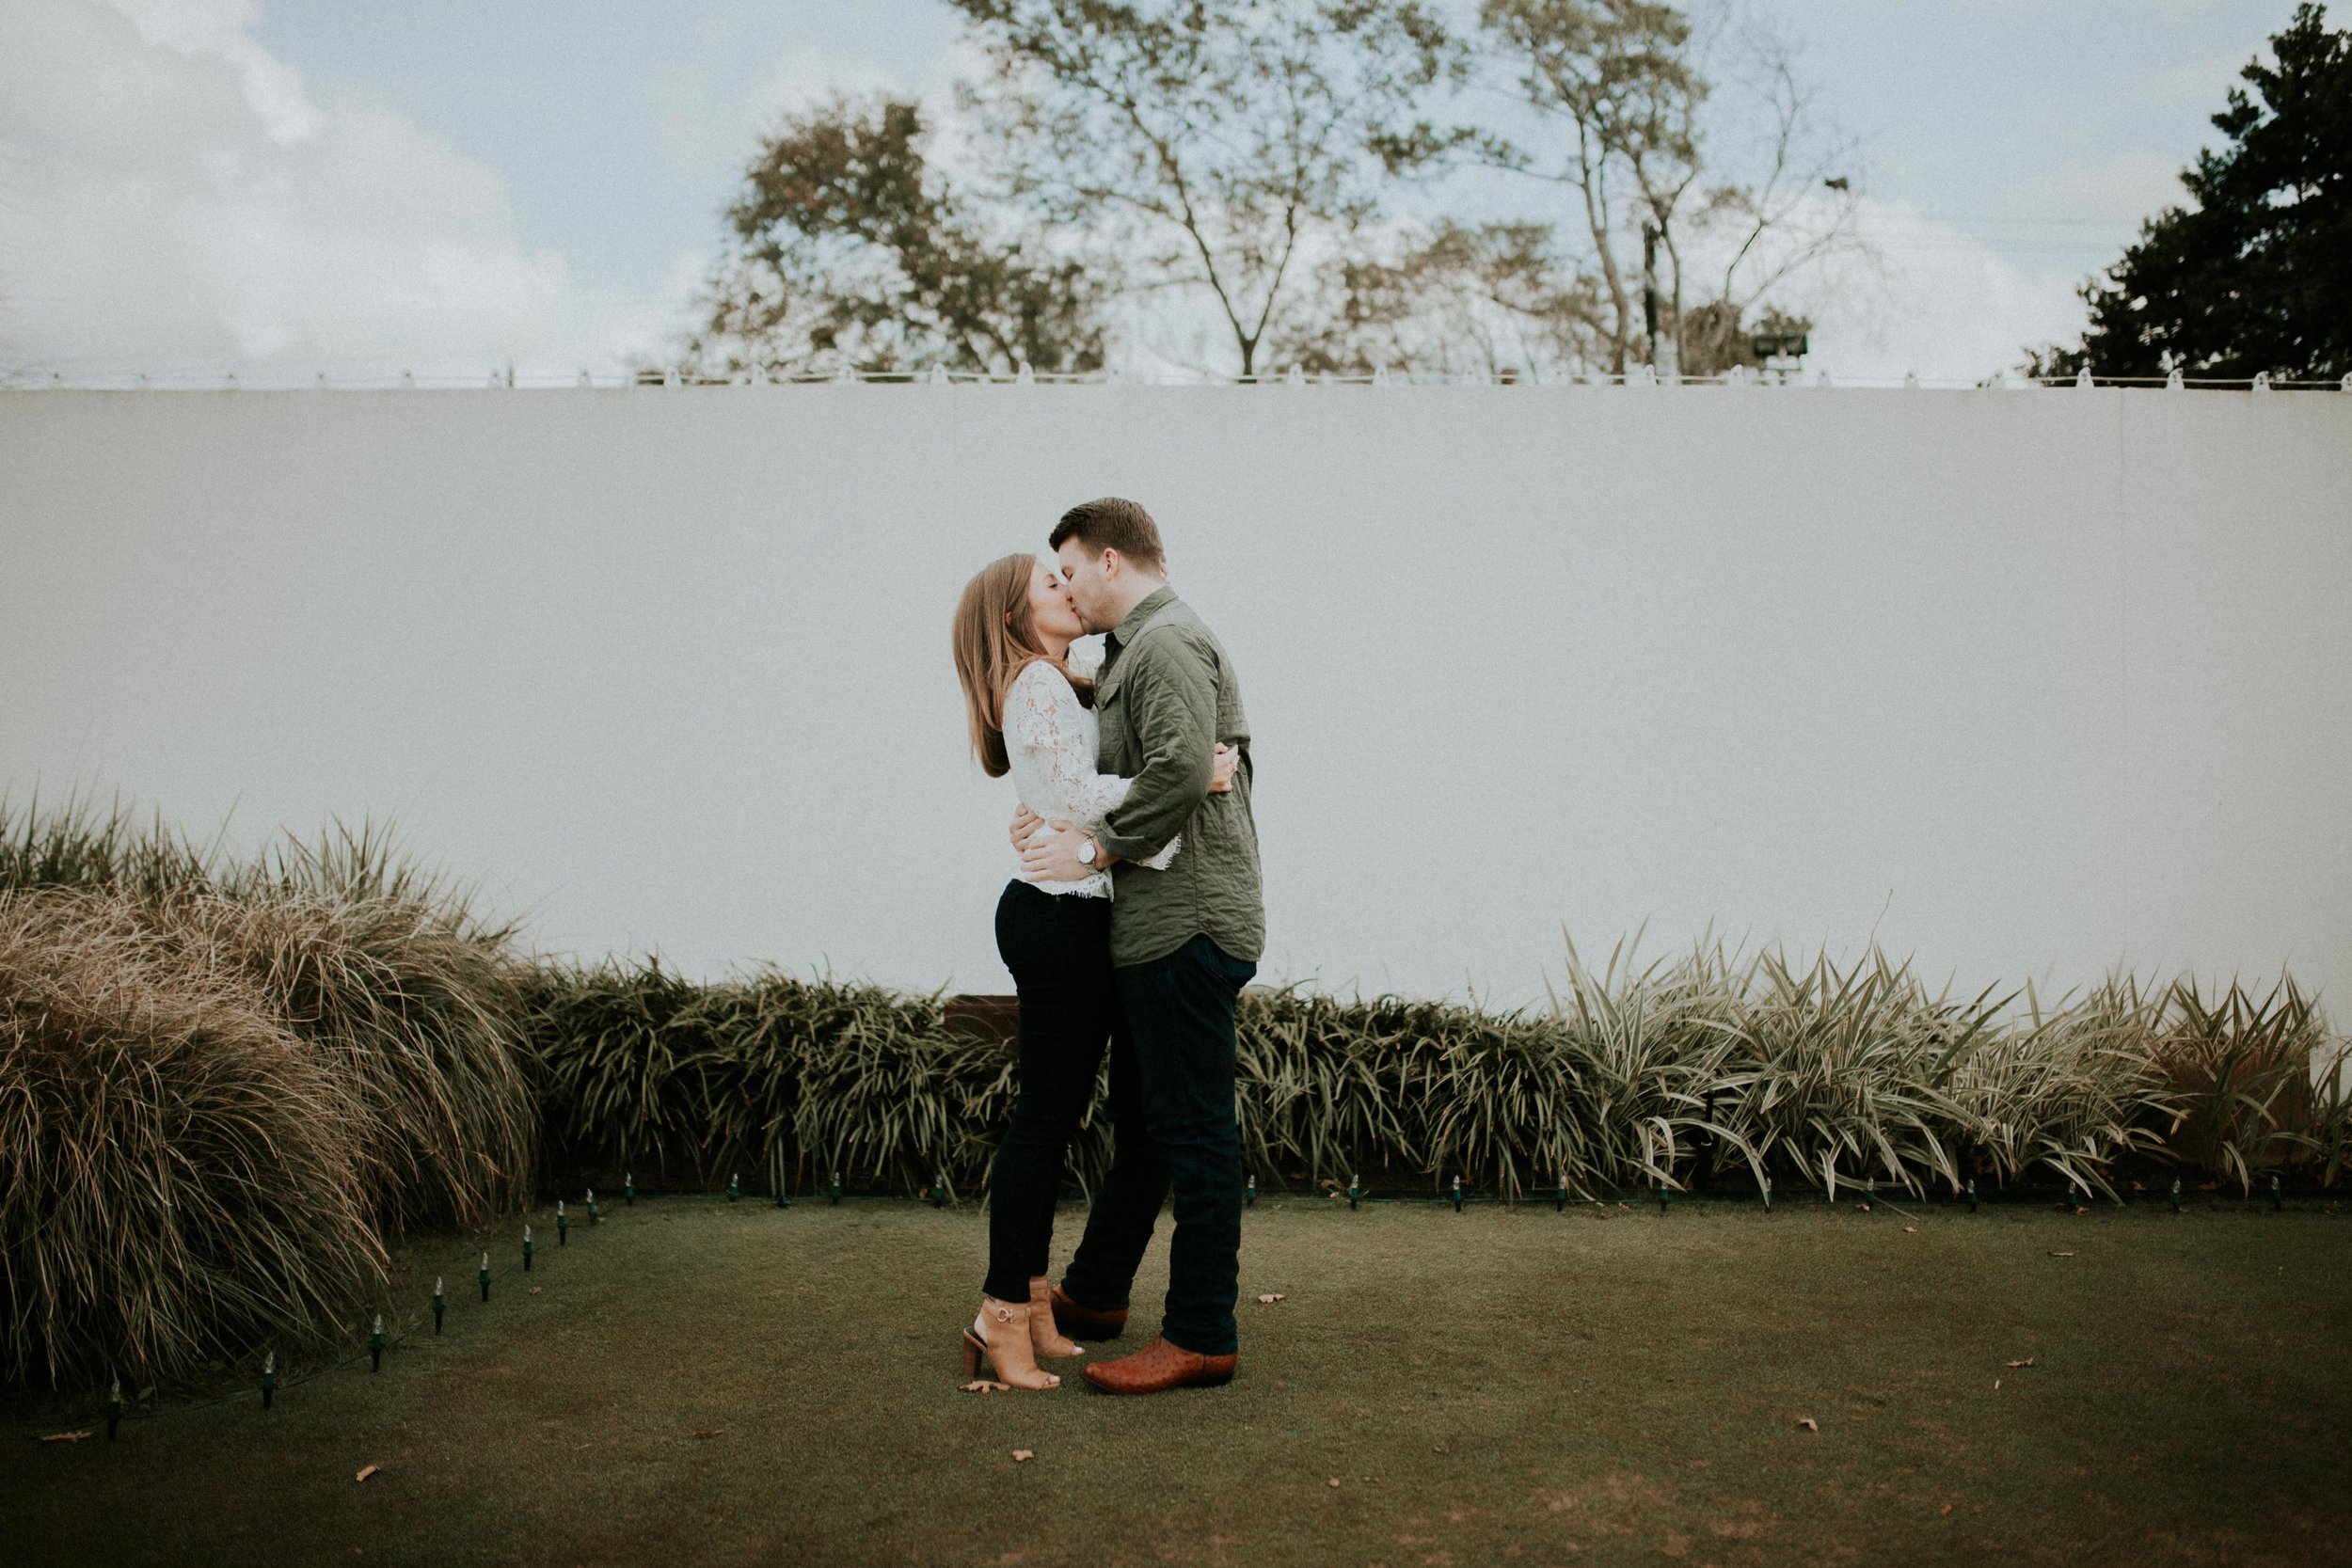 Memorial Park Engagement Session Houston Texas - Madeleine Frost-1132.jpg